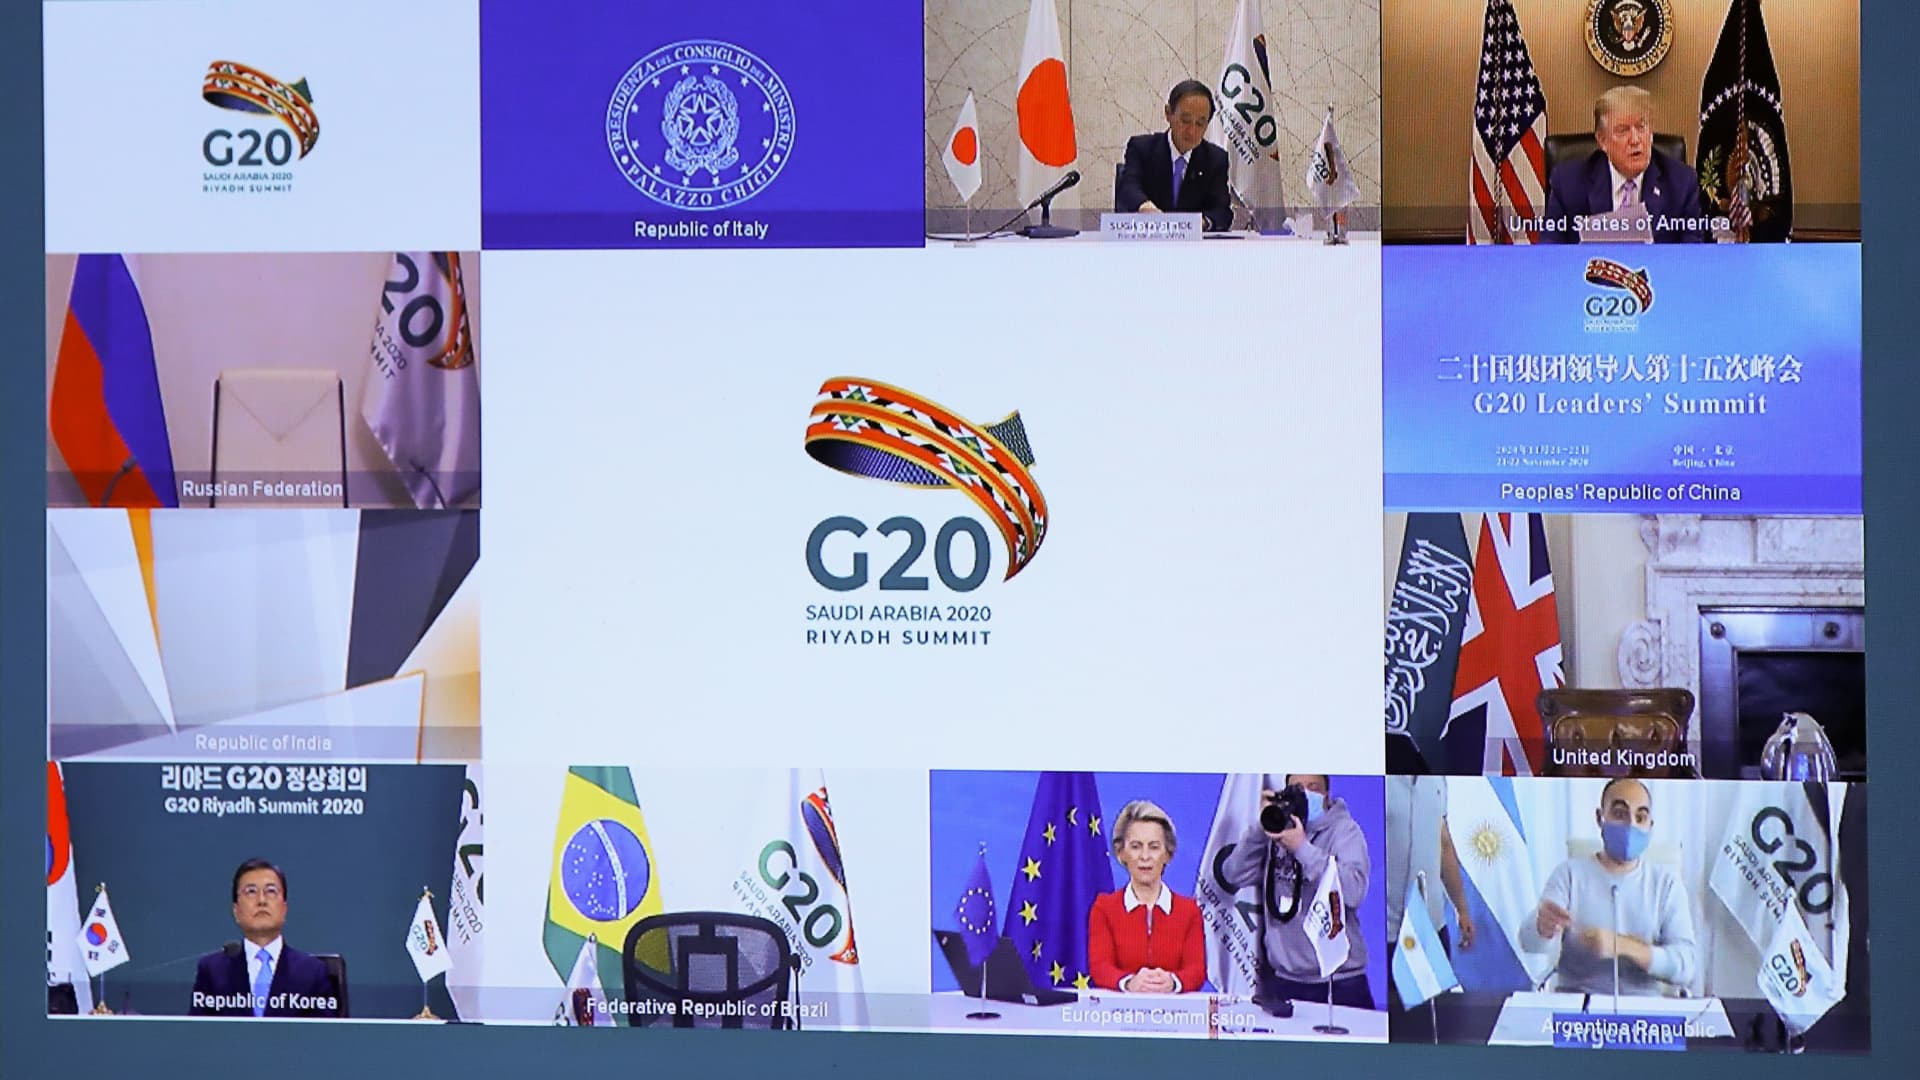 Japanese Prime Minister Yoshihide Suga (top L), US President Donald Trump (top R), South Korean President Moon Jae-in (down L), and European Commission President Ursula von der Leyen (down C) are seen on a screen before the start of a virtual G20 summit hosted by Saudi Arabia and held over video conference amid the Covid-19 (novel coronavirus) pandemic, in Brussels, on November 21, 2020.